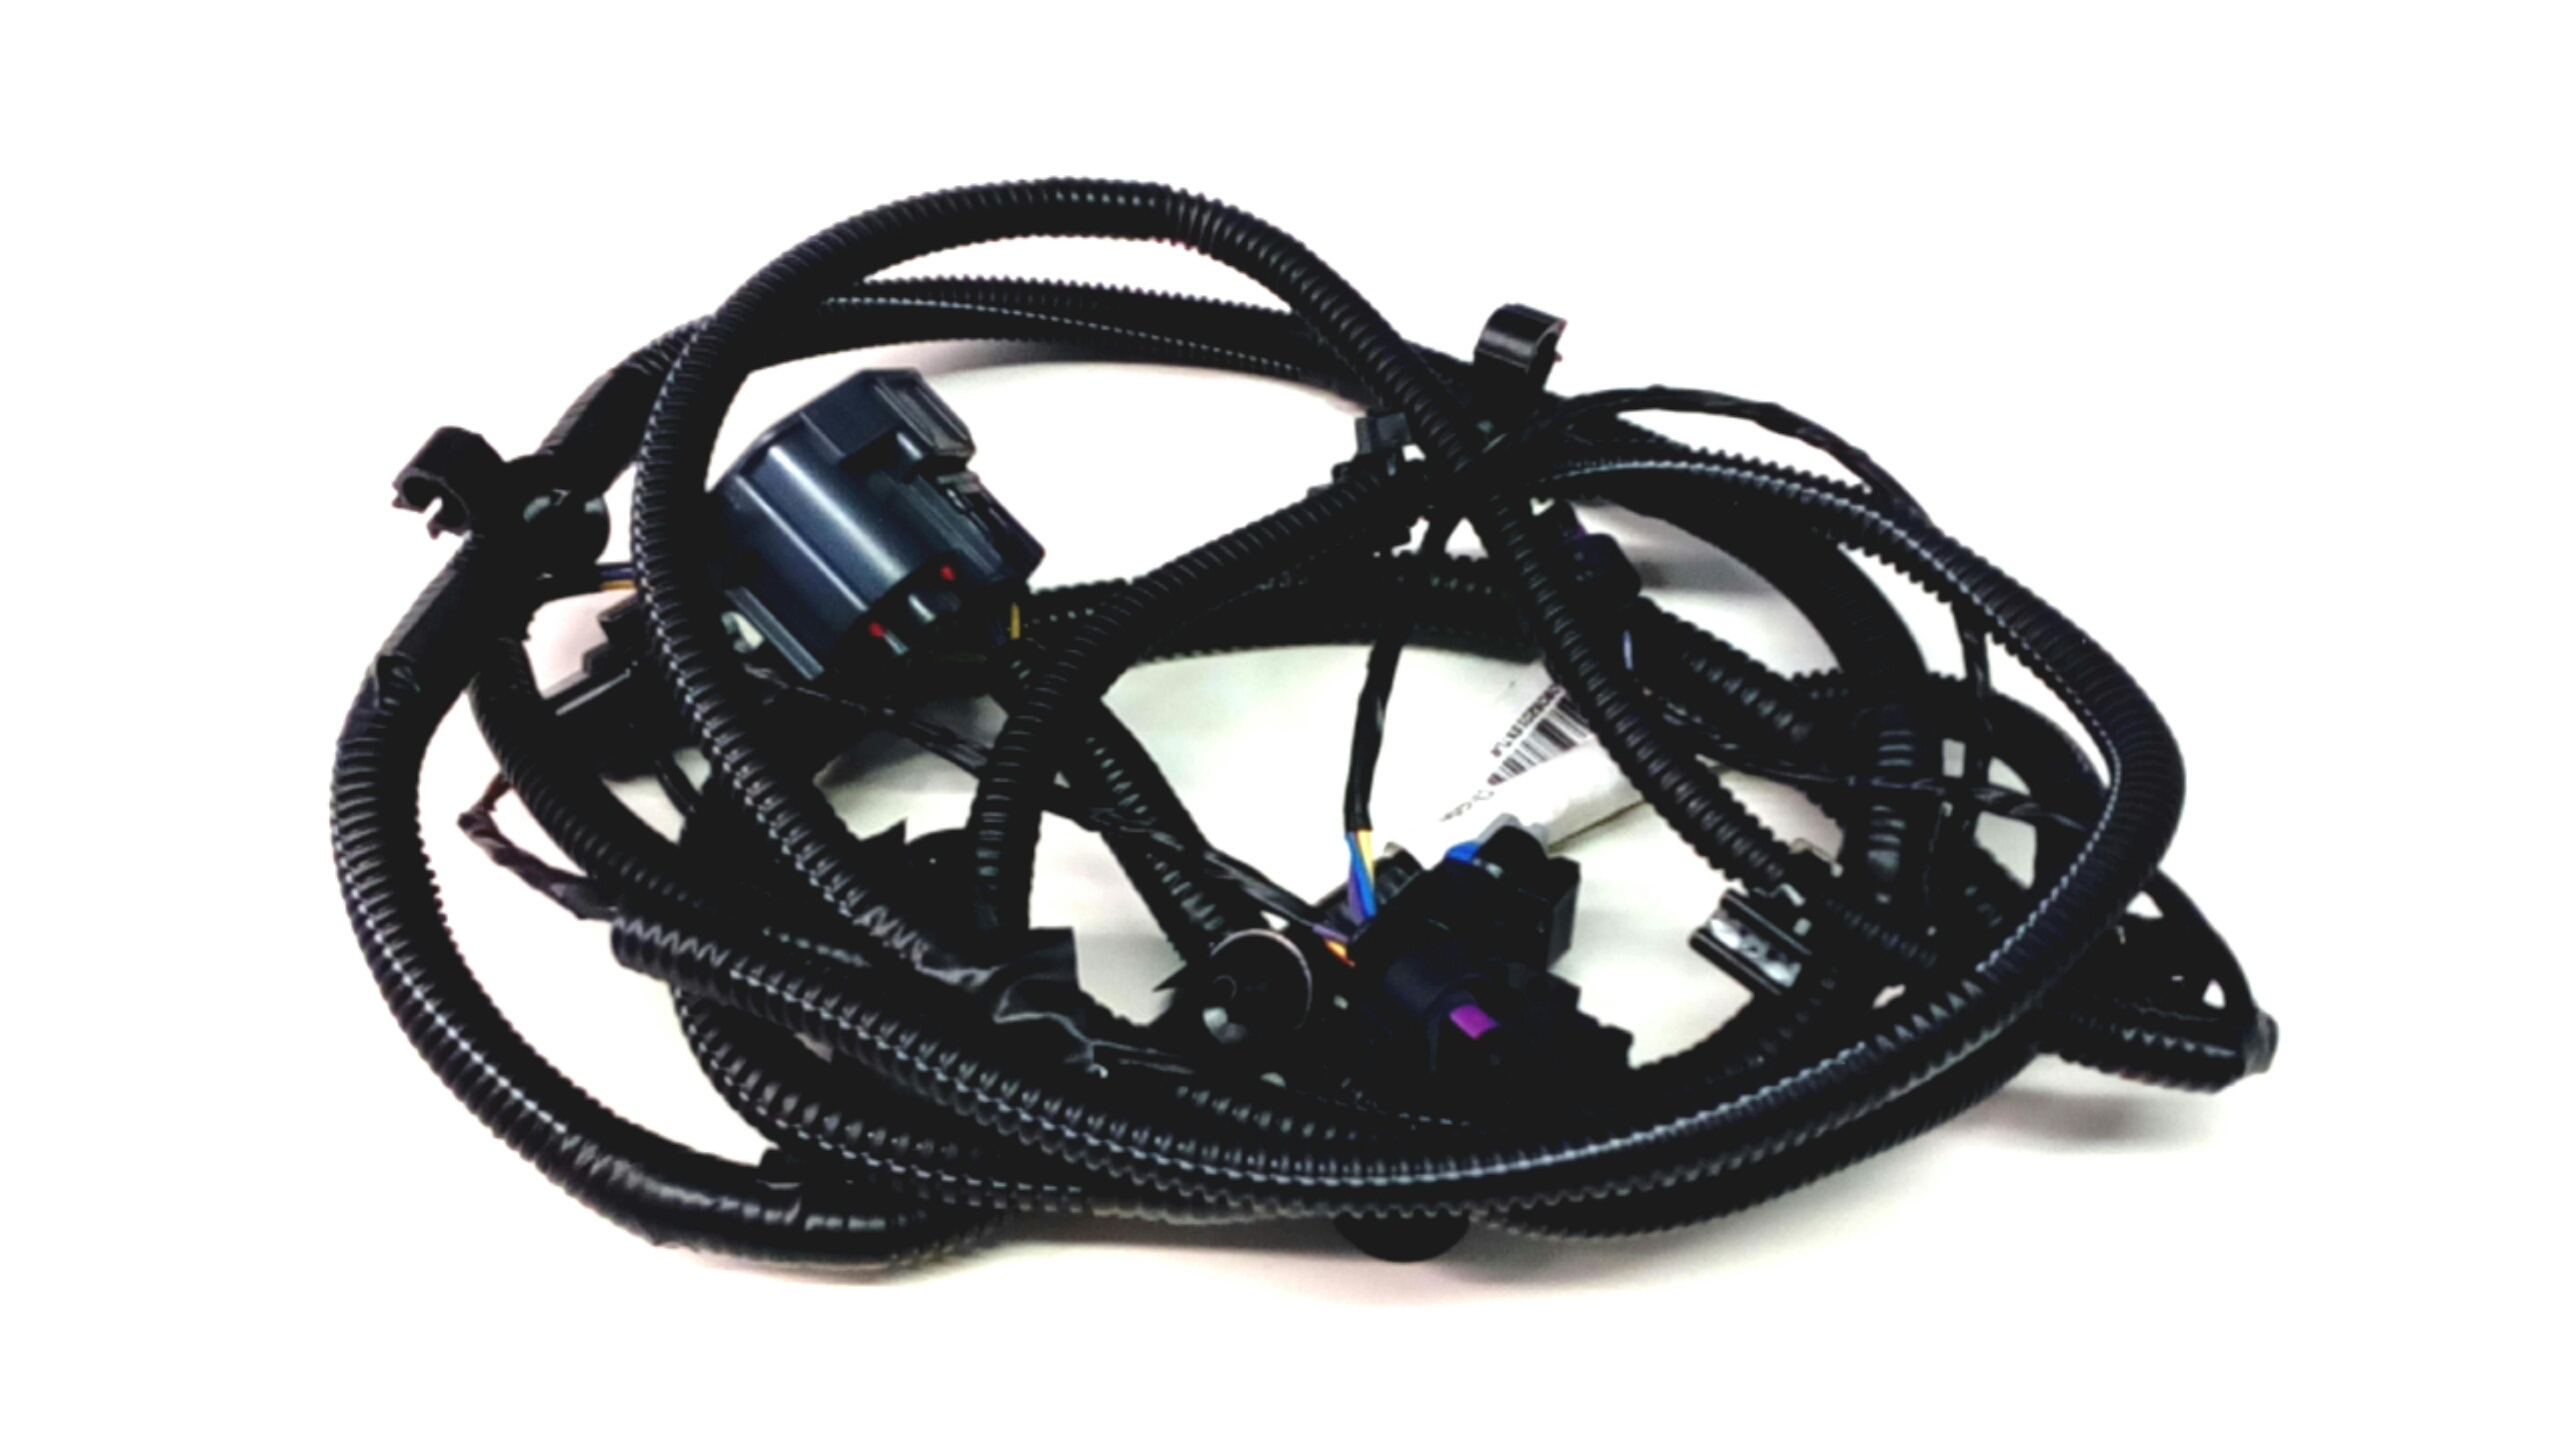 Volvo Xc60 Wiring Harness  Cable Harness Bumper   Front   Ch -84236  Variant Code